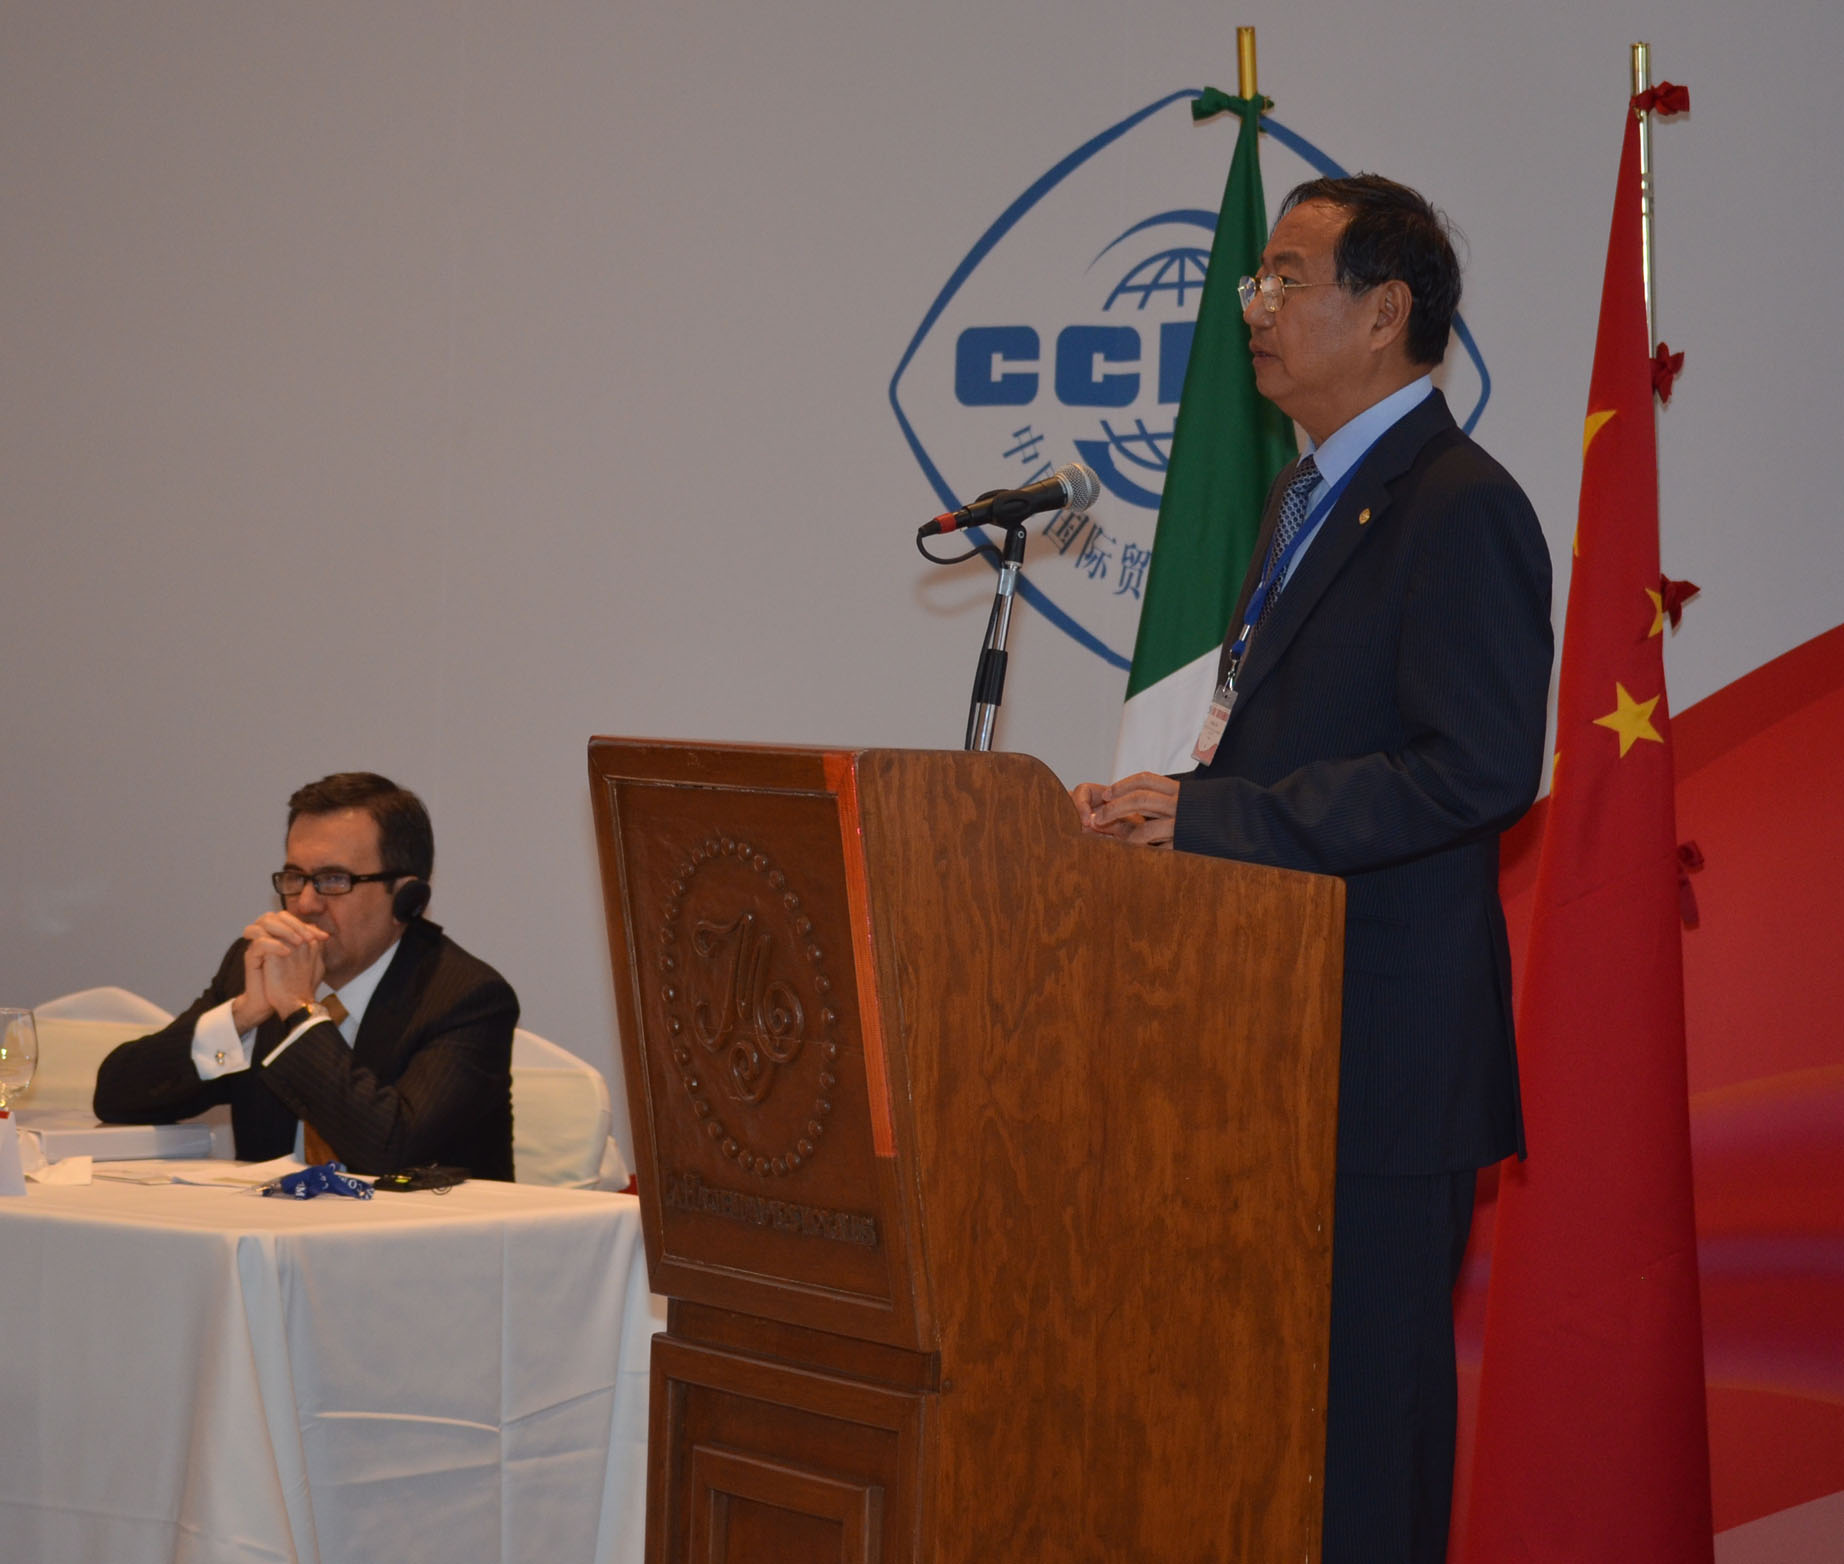 Xxii reunion plenaria empresarial mex. china 2